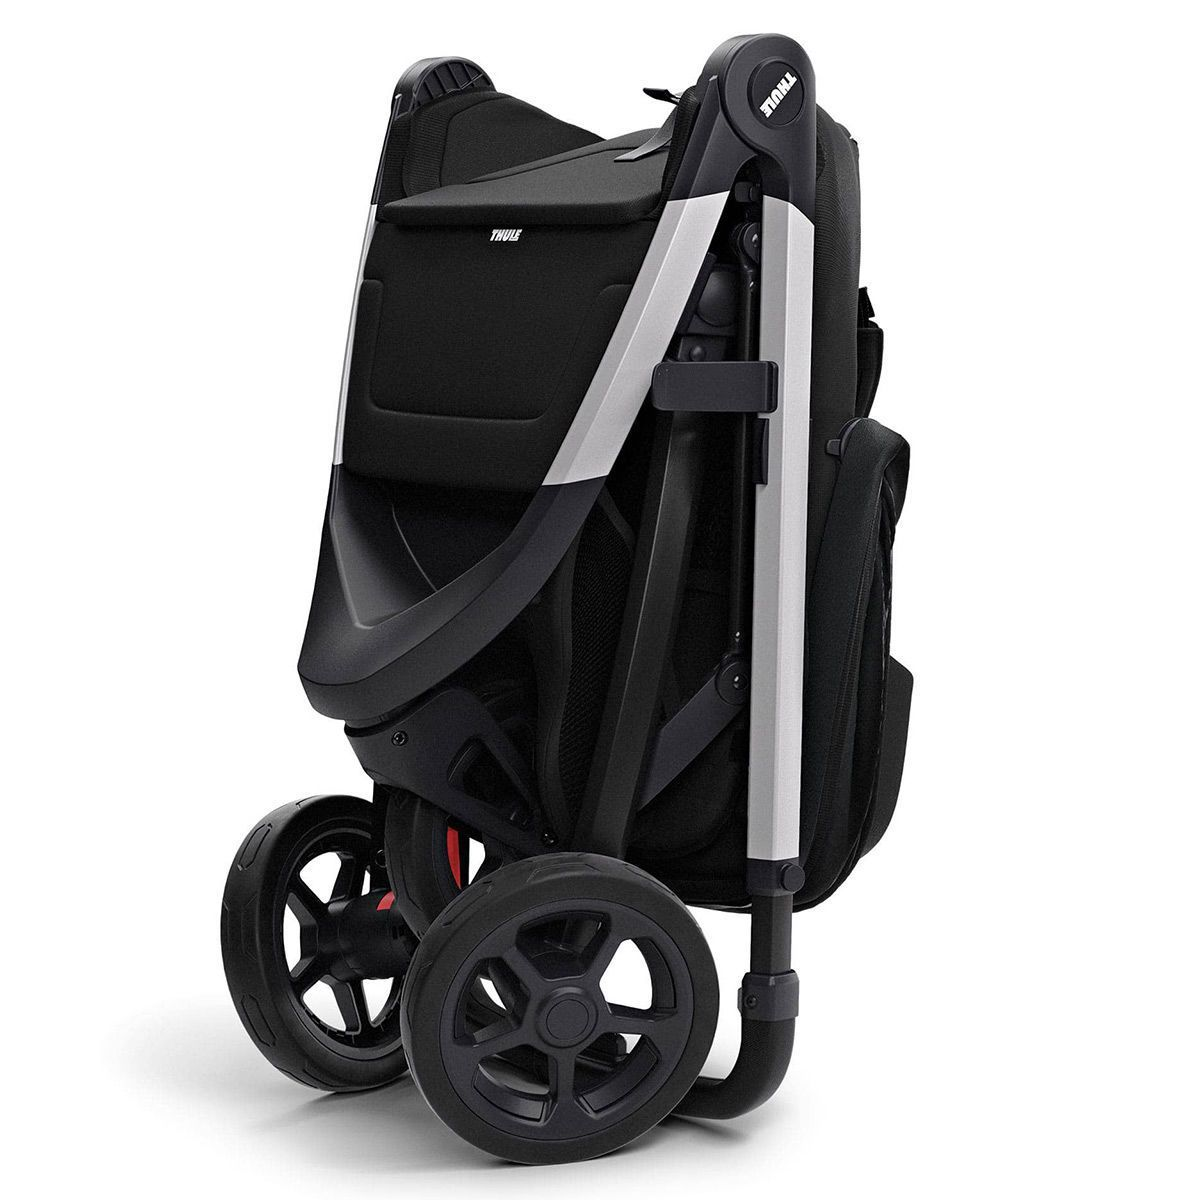 A lightweight collapsible stroller is convenient for travel. - Gate Checking Car Seat and Stroller | Baby Journey